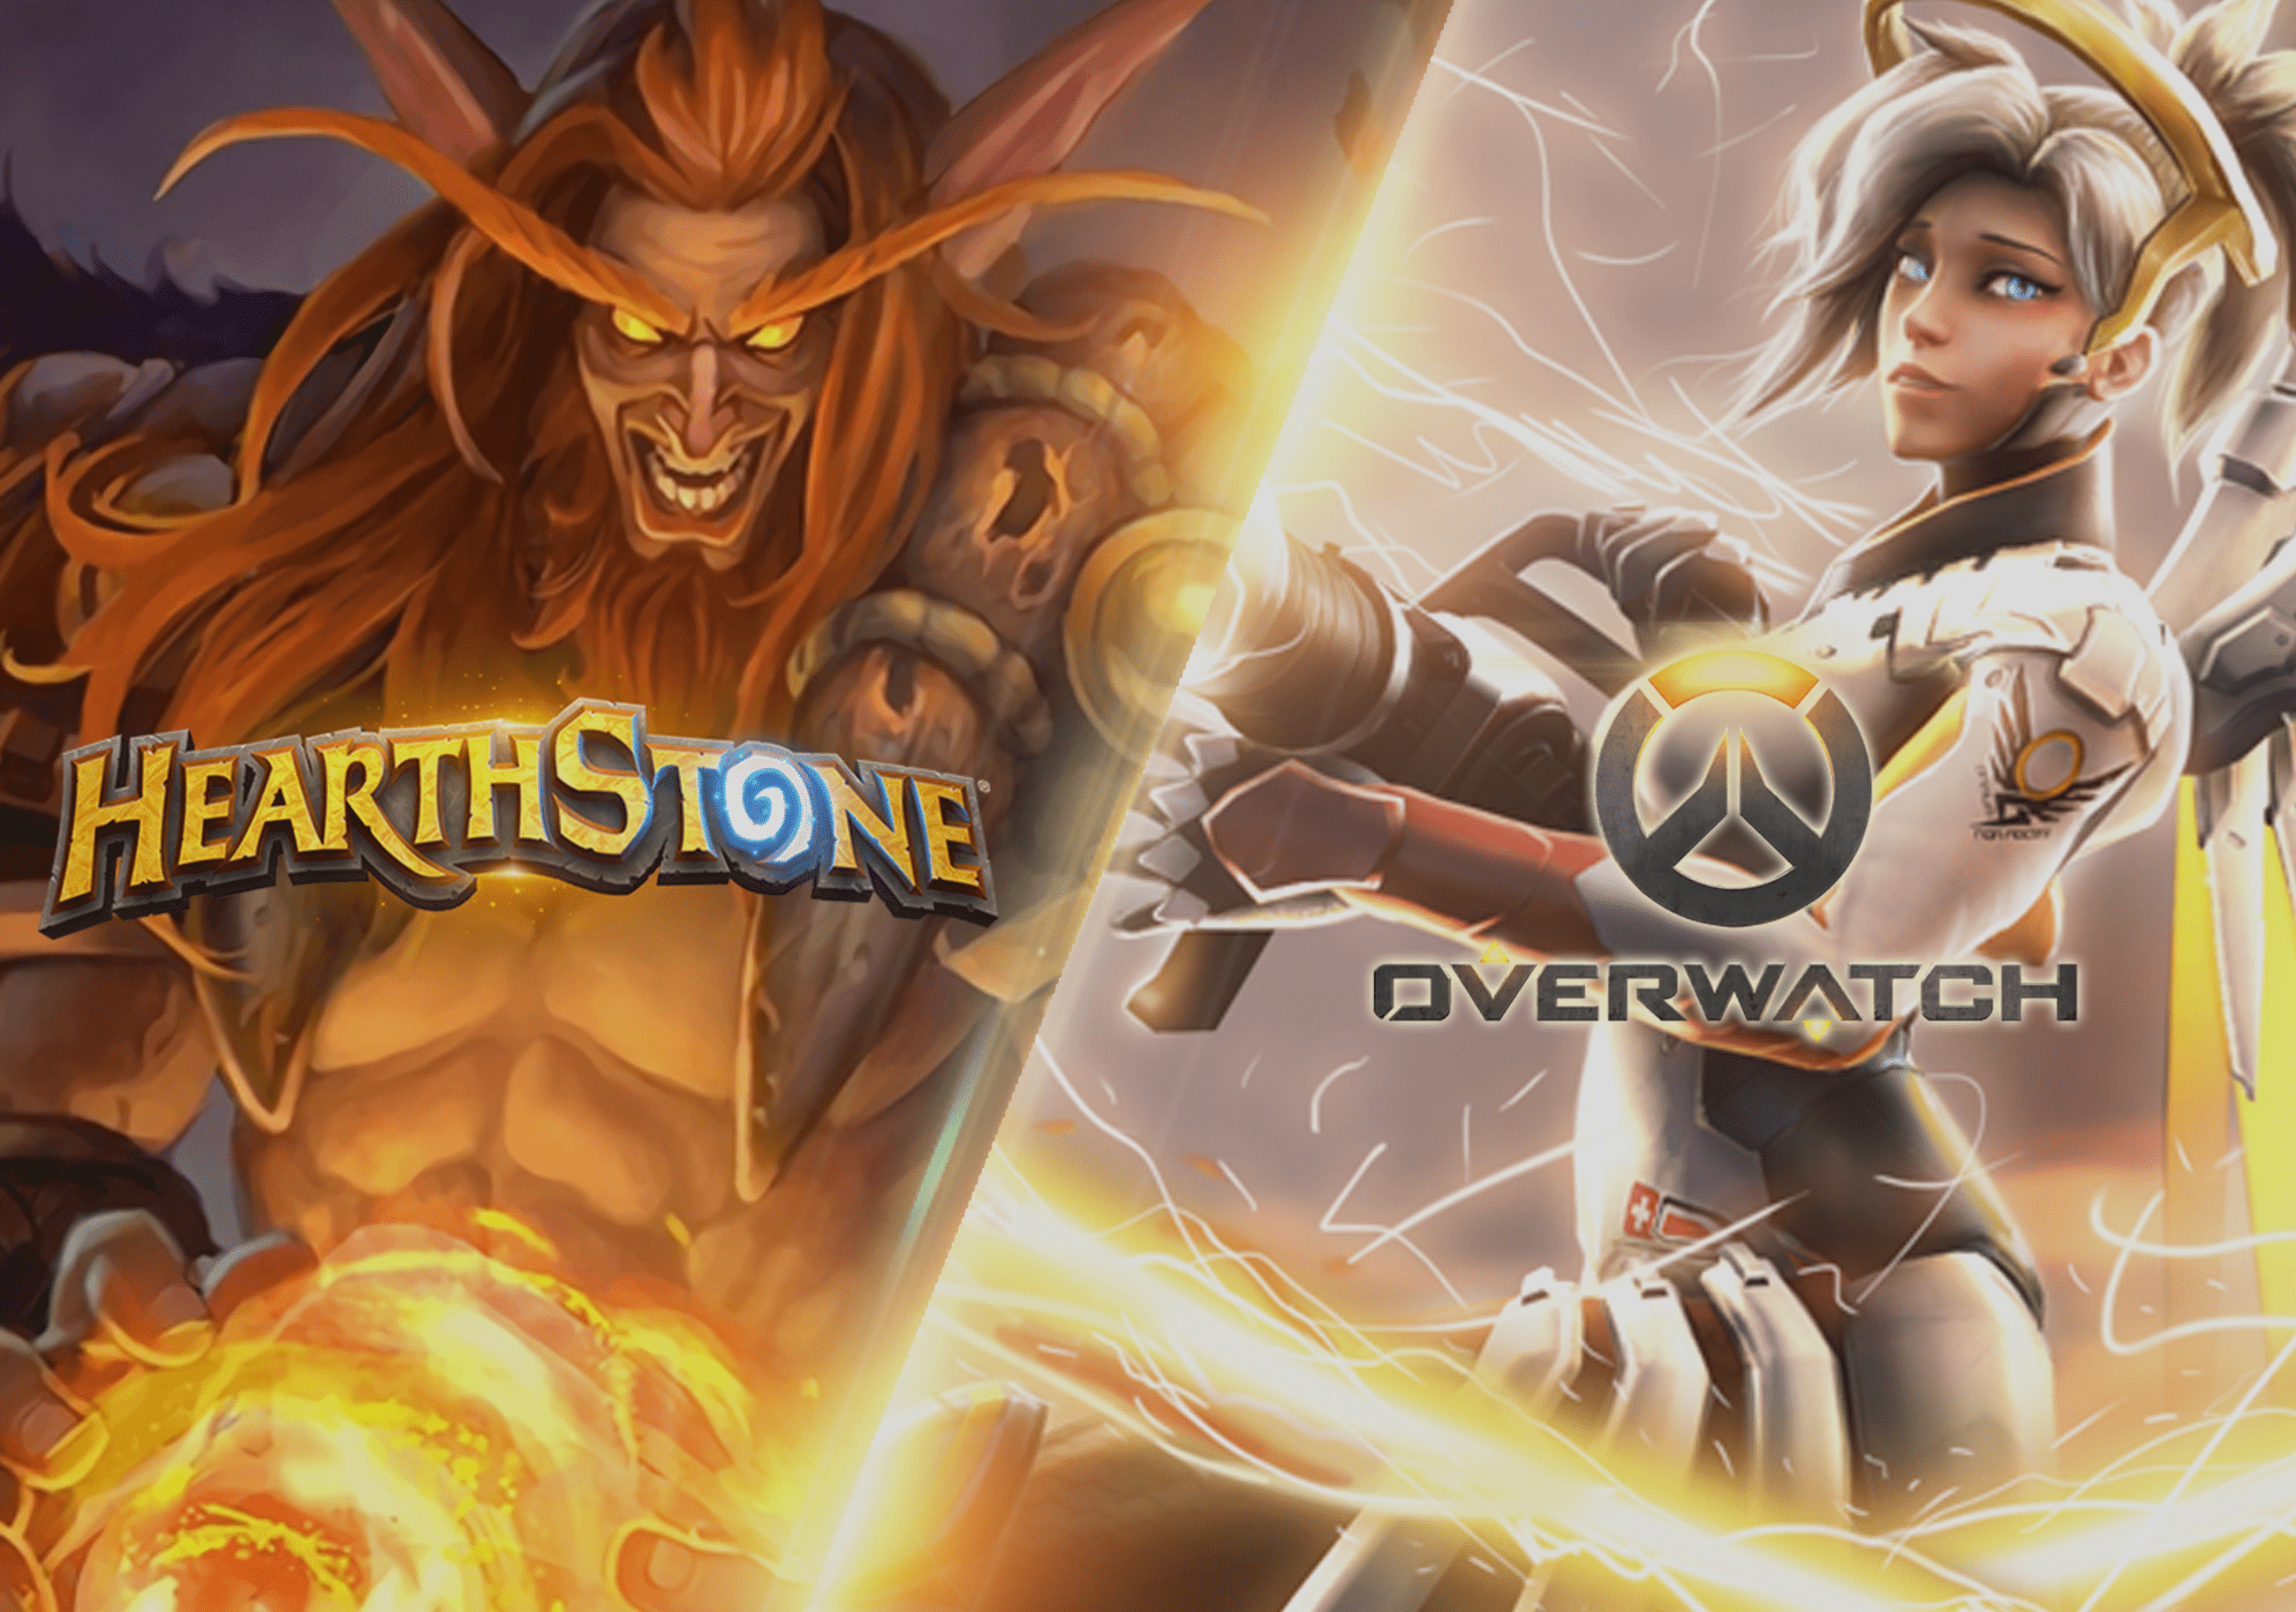 Overwatch and hearthstone banners side by side with logo